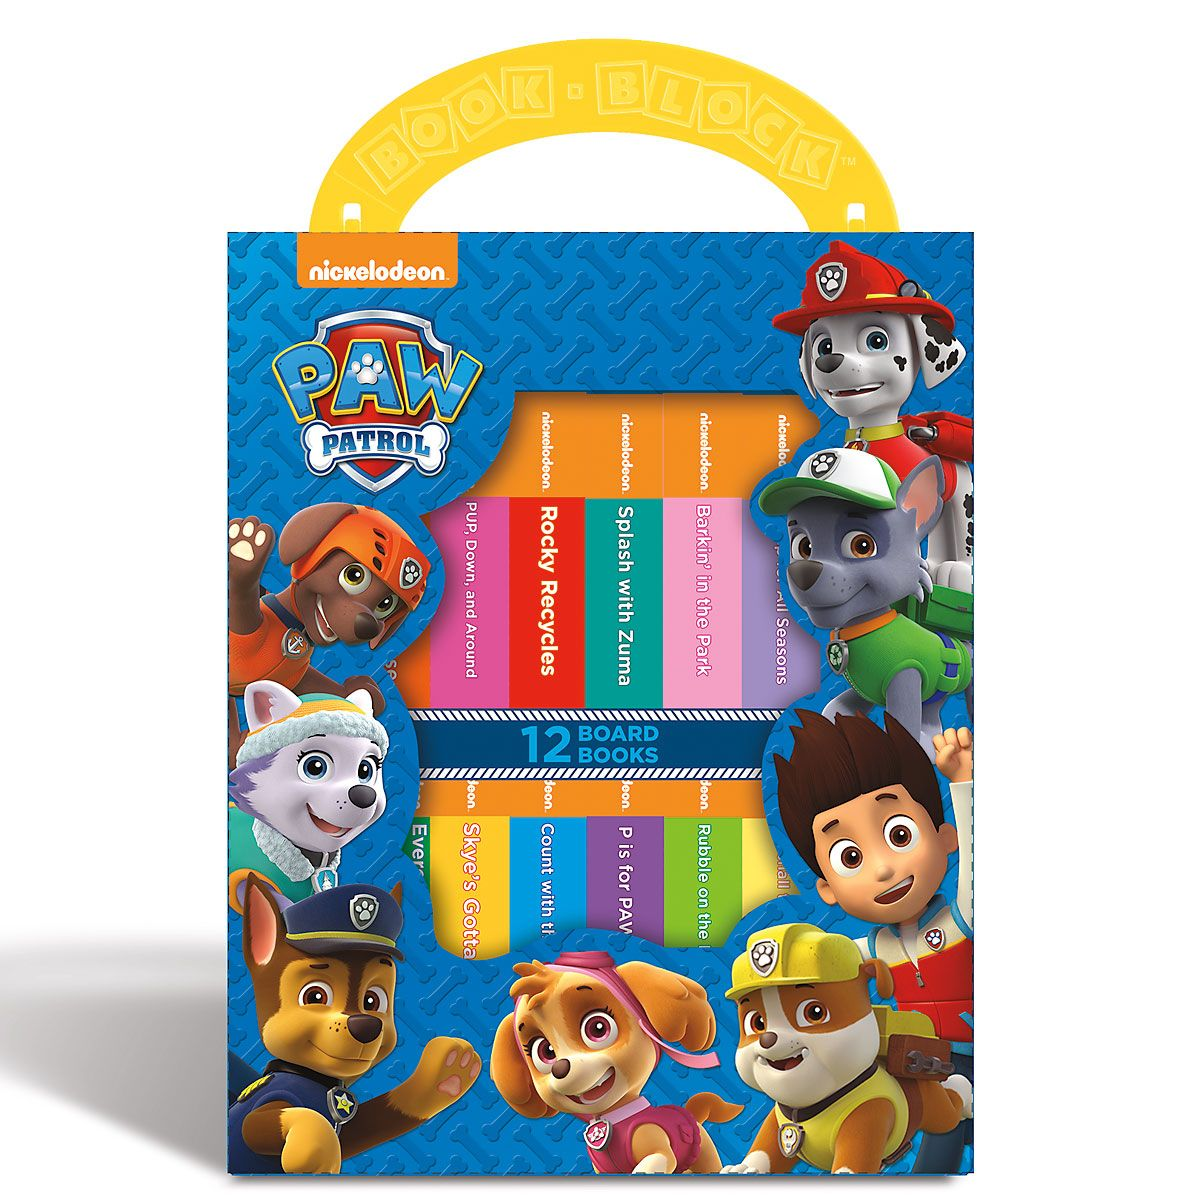 My First Library Set of Board Books - Paw Patrol